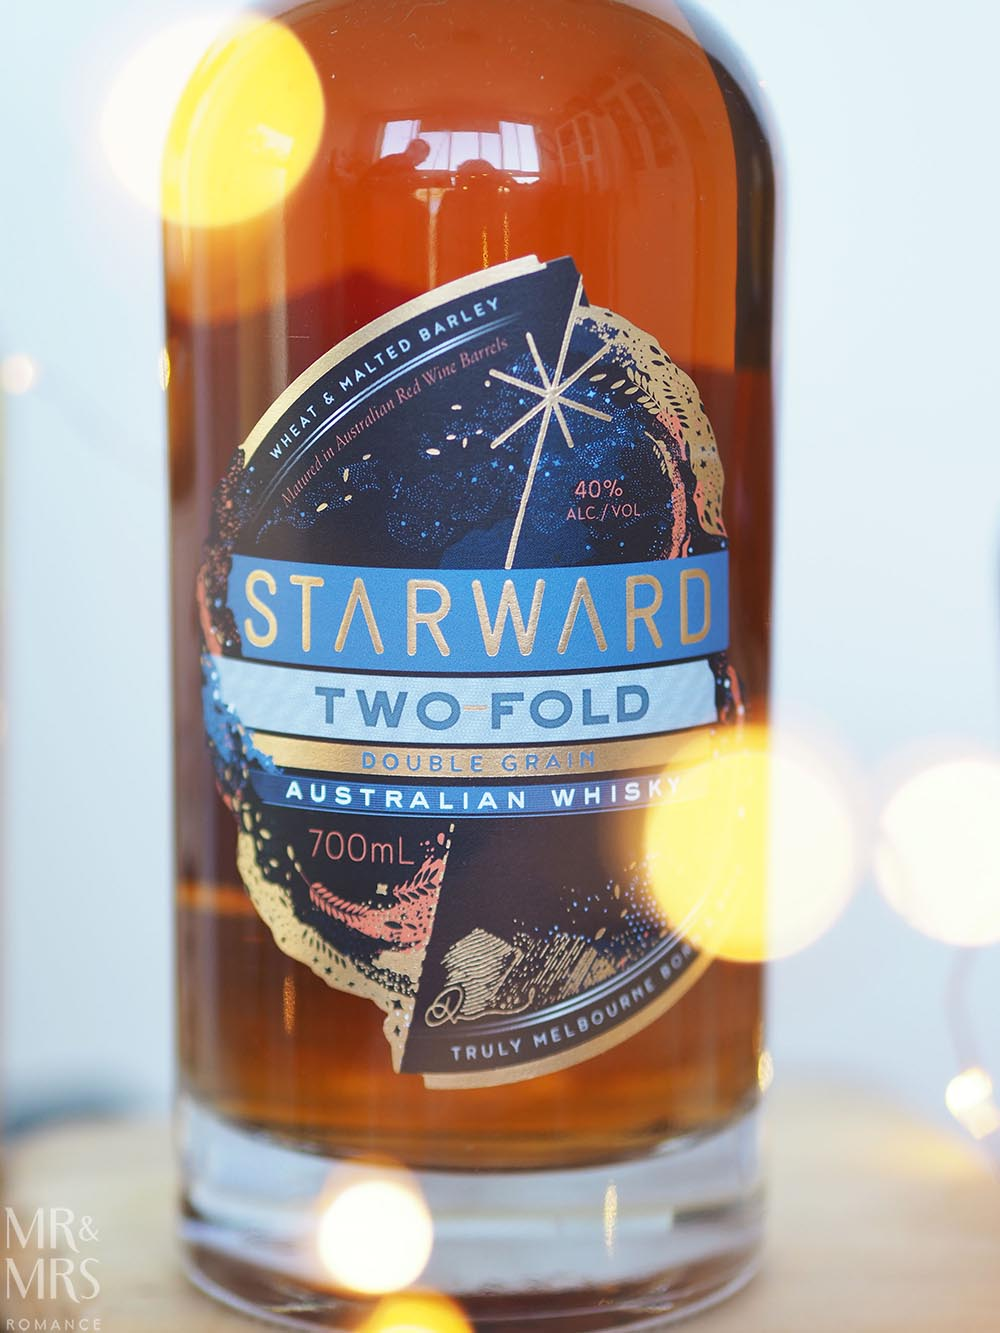 Last-minute Christmas gifts - Starward Two-Fold whisky